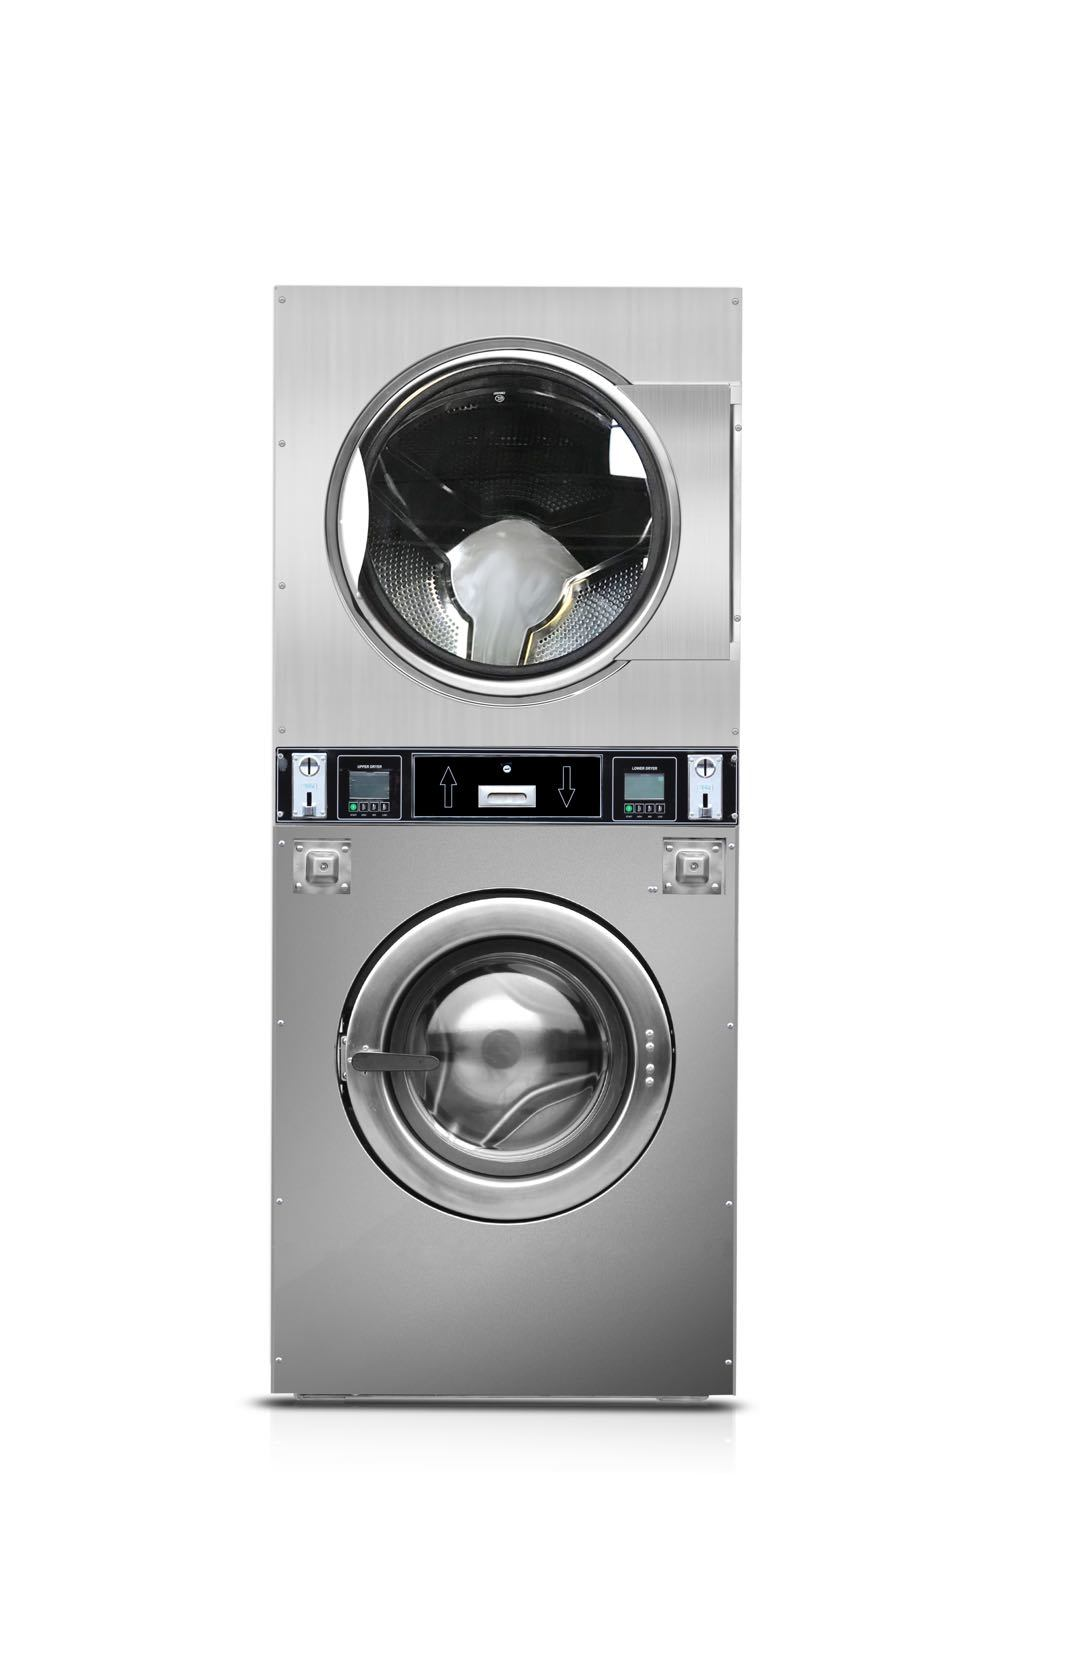 Washing Machine Singapore Photos And Wallpapers Electrolux Front Loading Washer Ewf14113 China Mercial Coin Washers Dryers